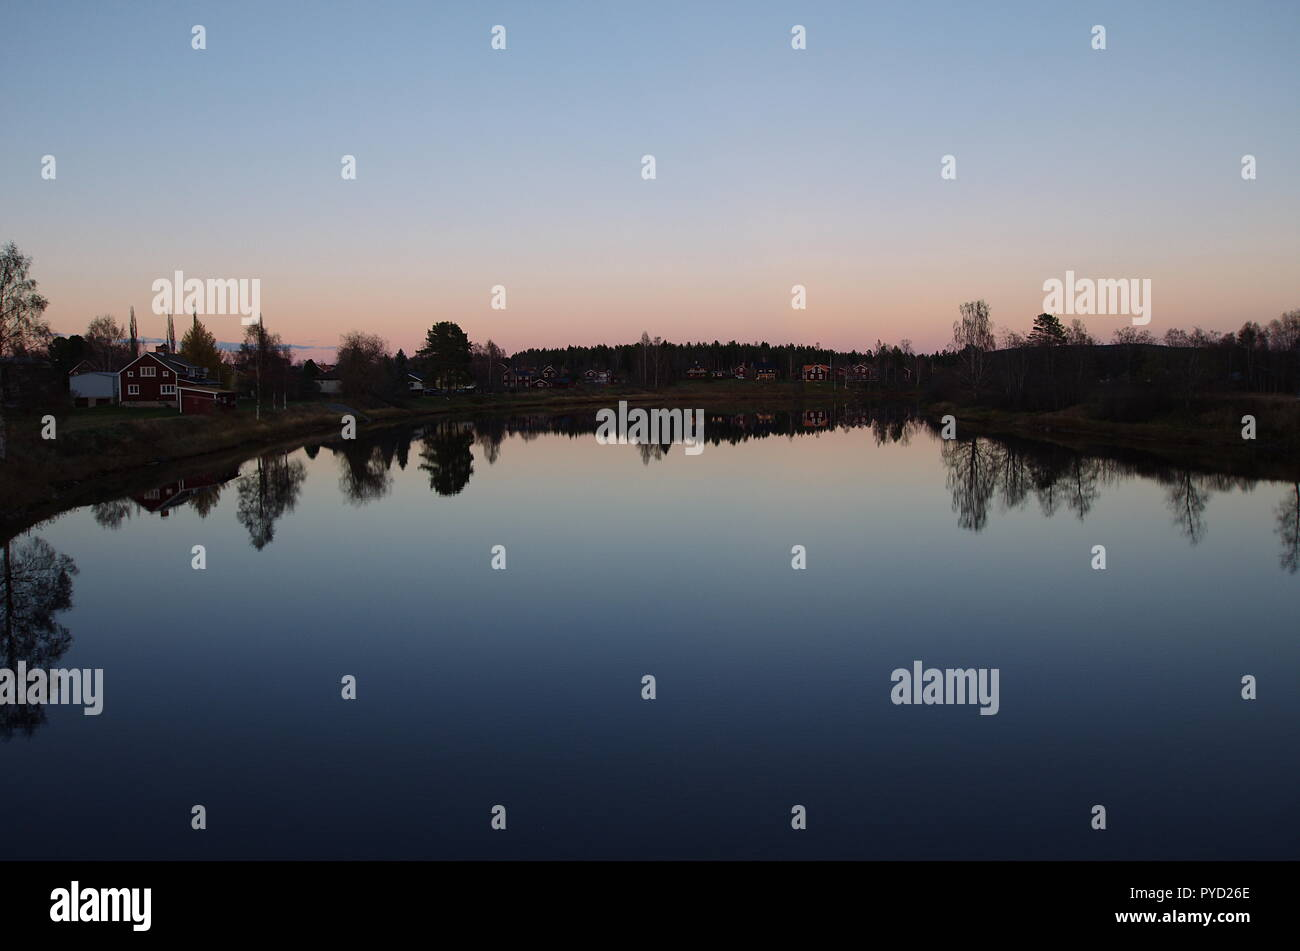 Beautiful sunset over a river in Dalarna. - Stock Image